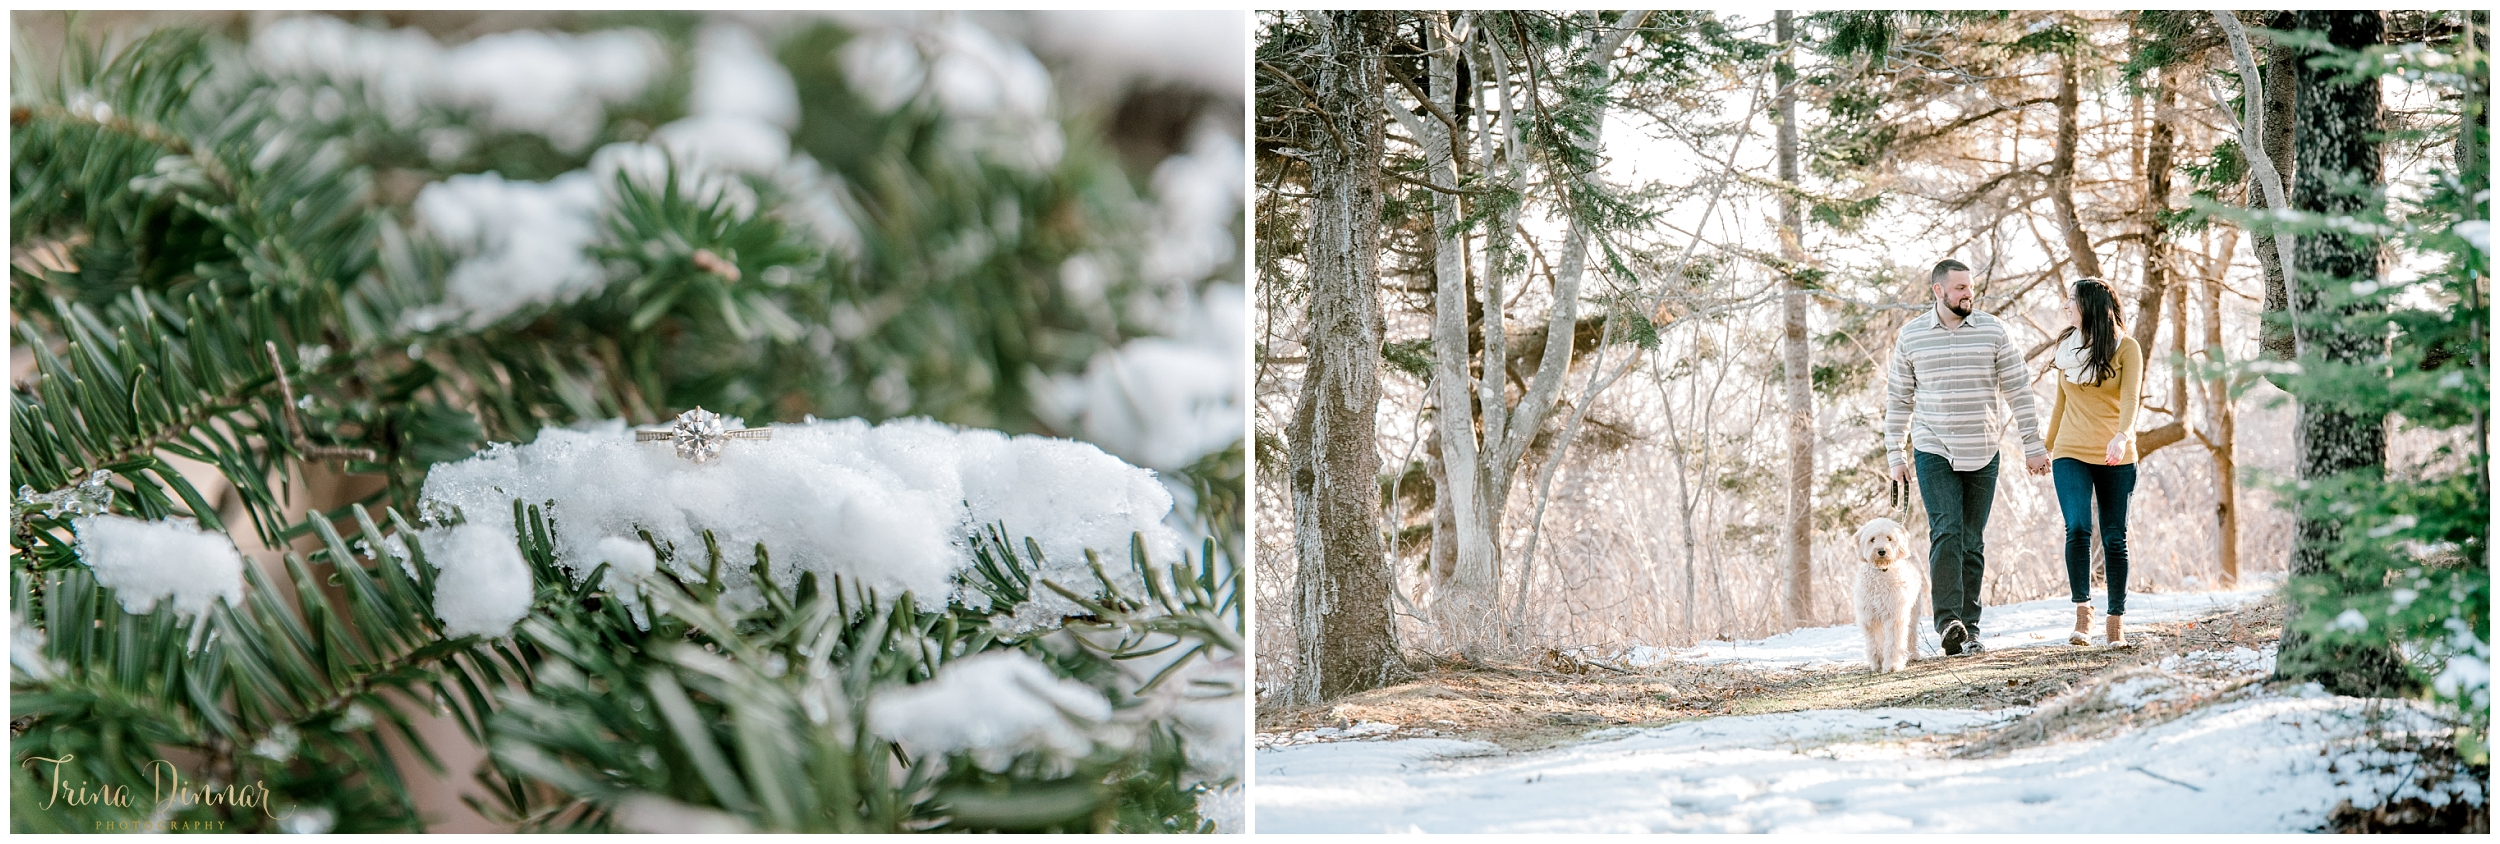 Engagement photography during a Maine winter.